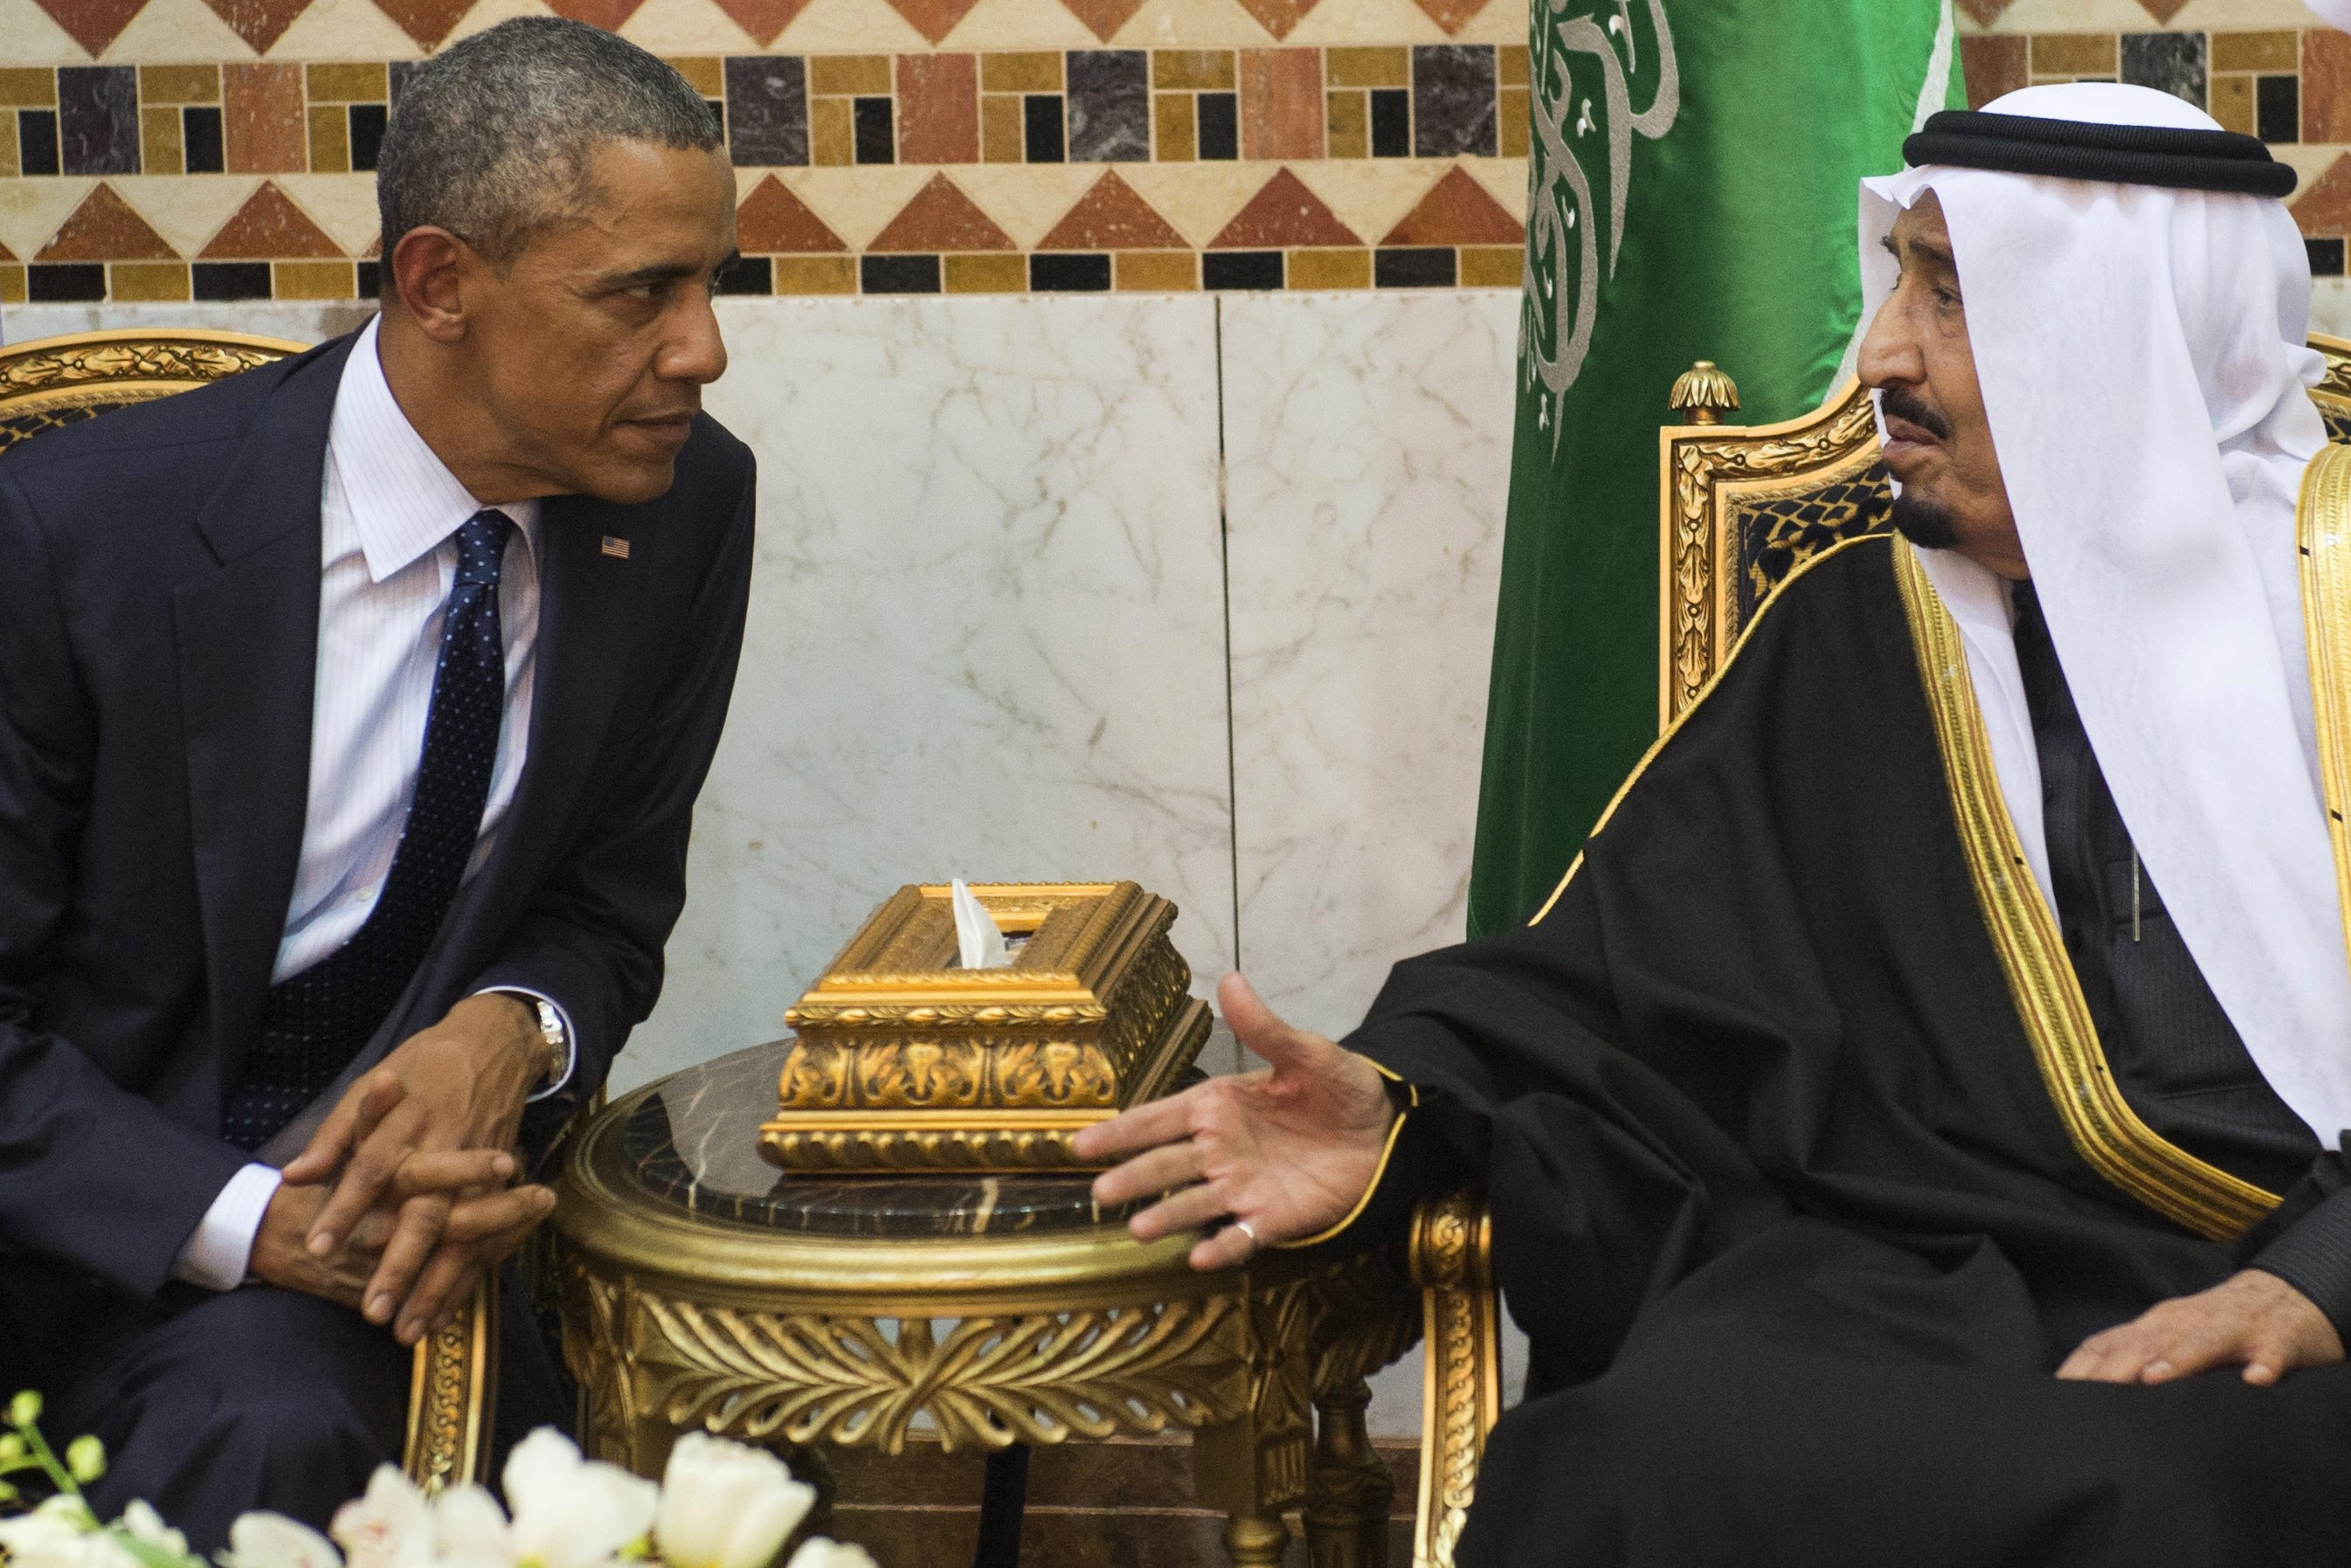 Saudi King Salman meets with President Barack Obama at the Erga Palace in the capital Riyadh on January 27, 2015.